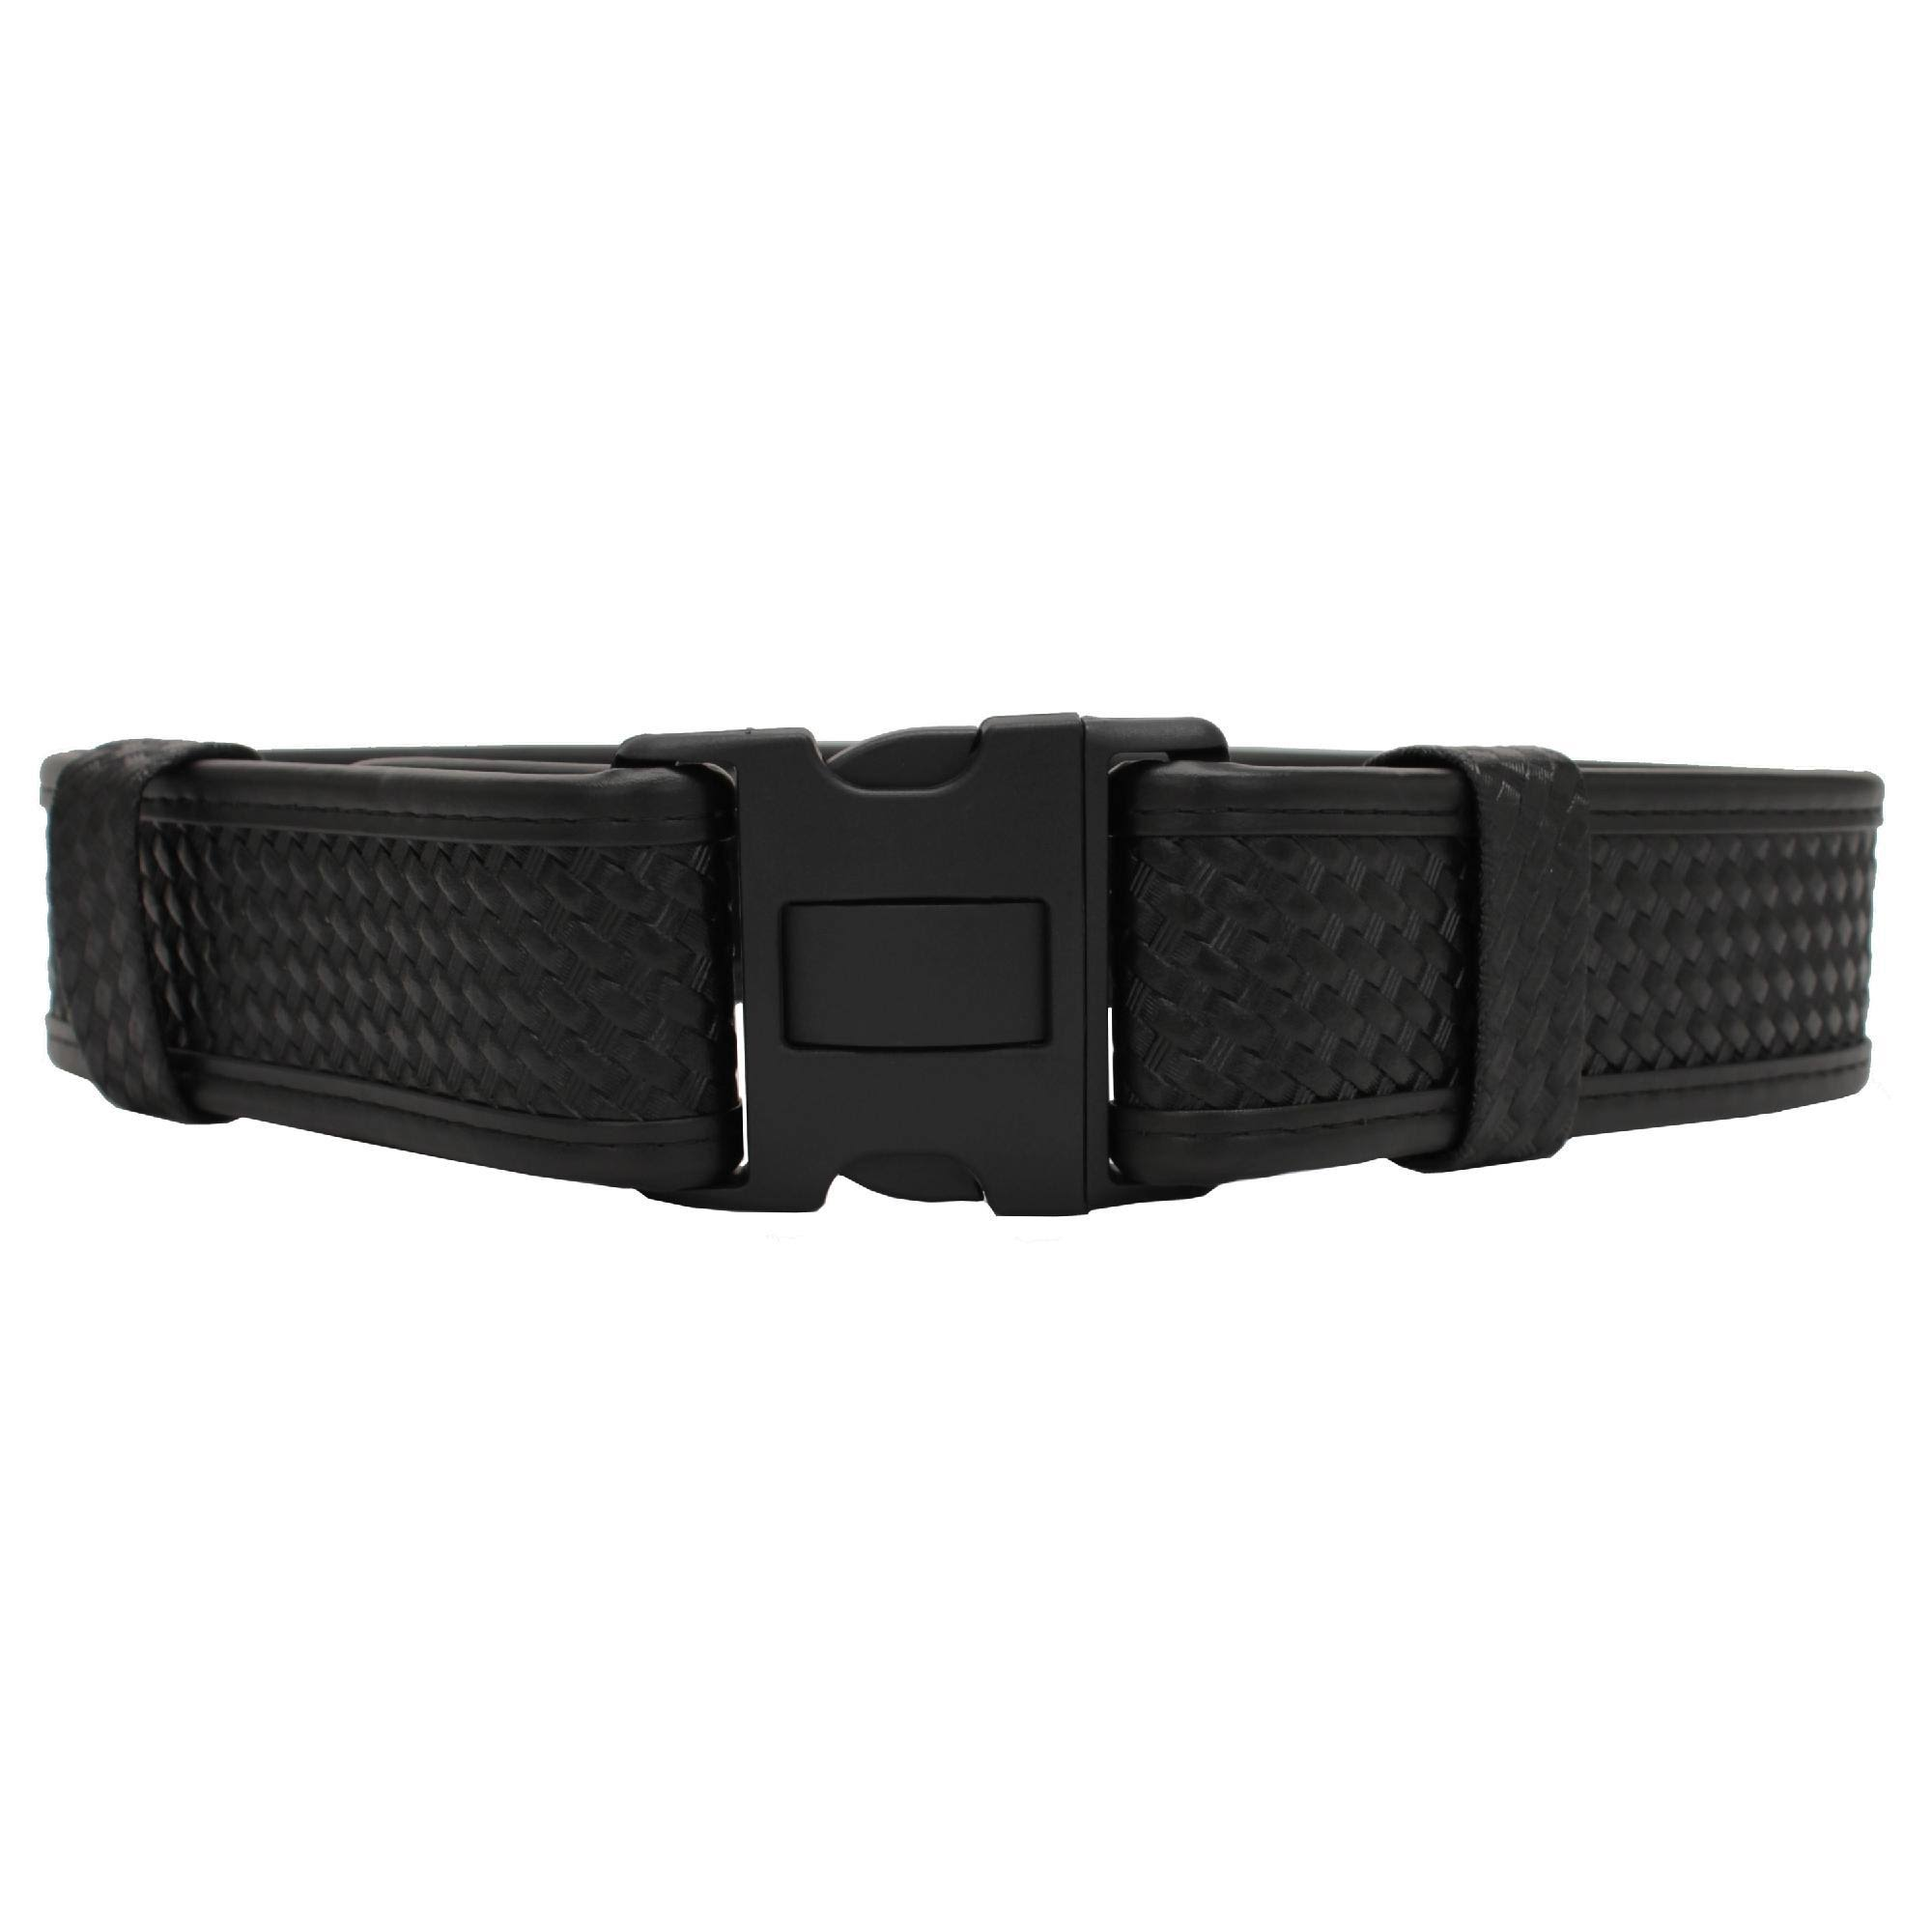 Bianchi Accumold Elite Duty Belt - Large, Black